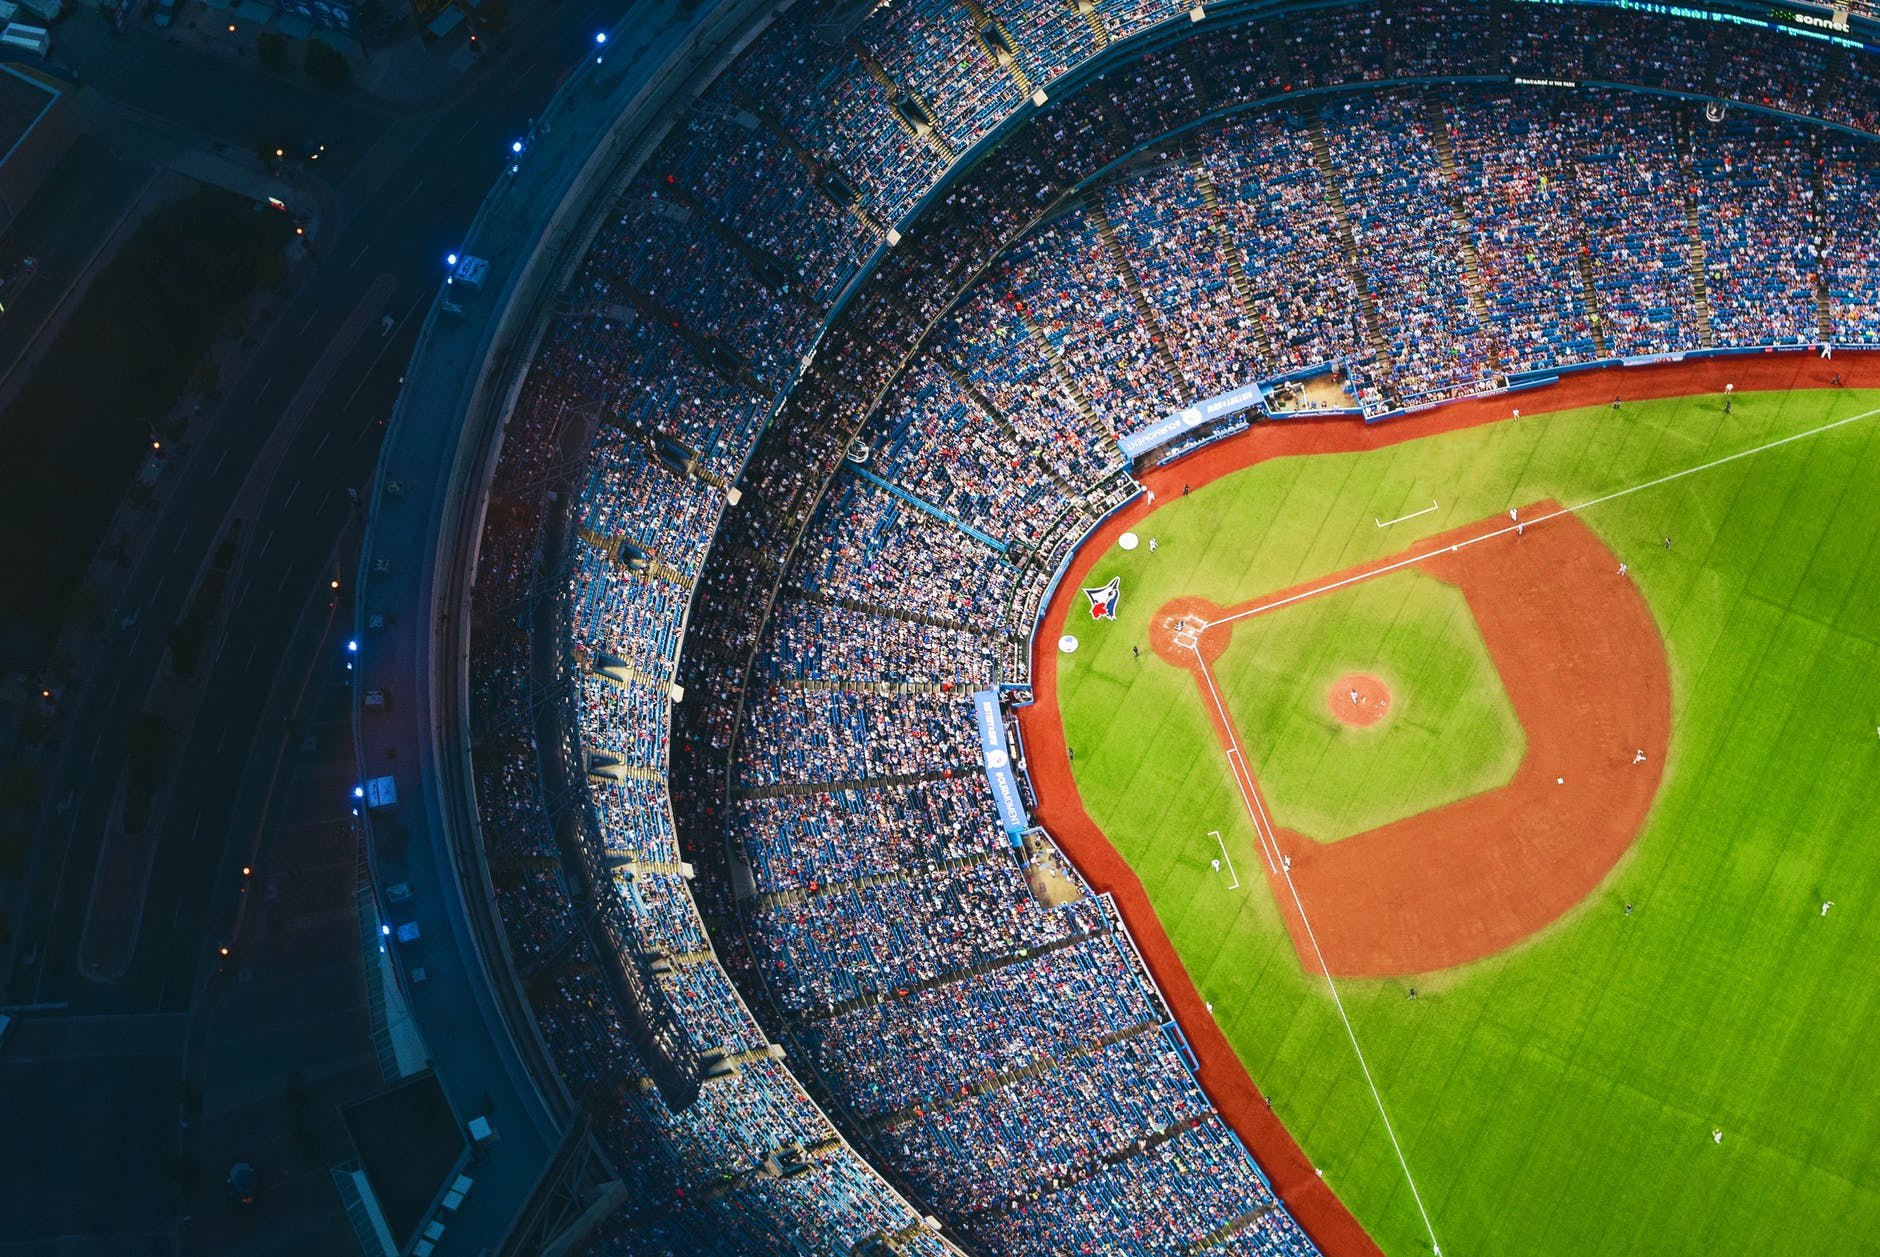 Blue Jays Skydome stadium